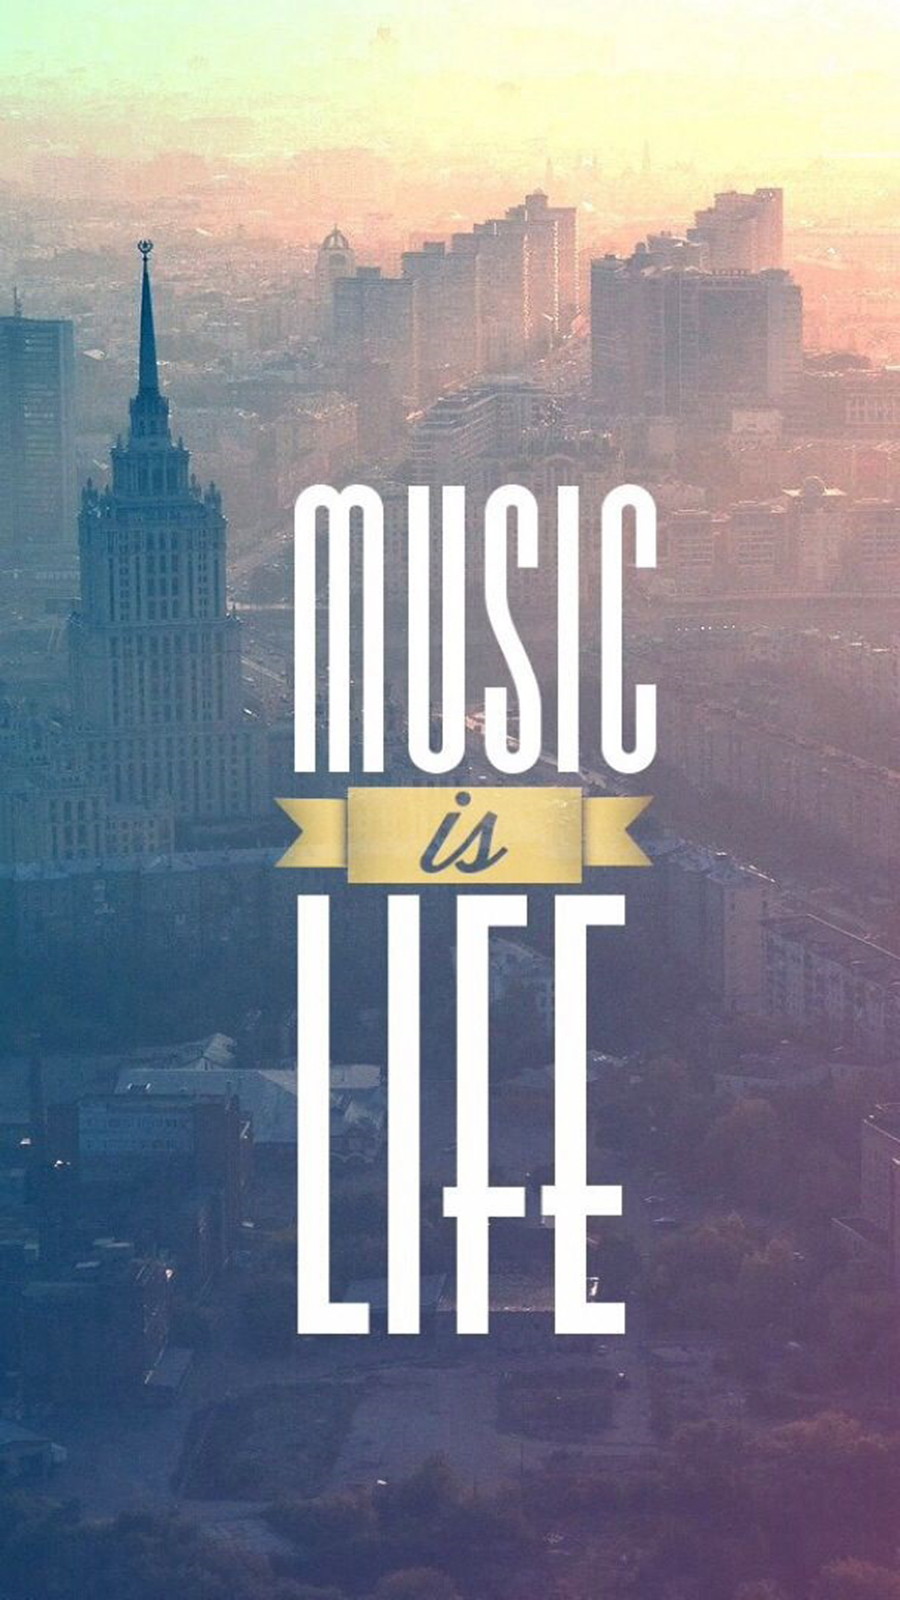 Music is Life Wallpapers Free Download For Your Device